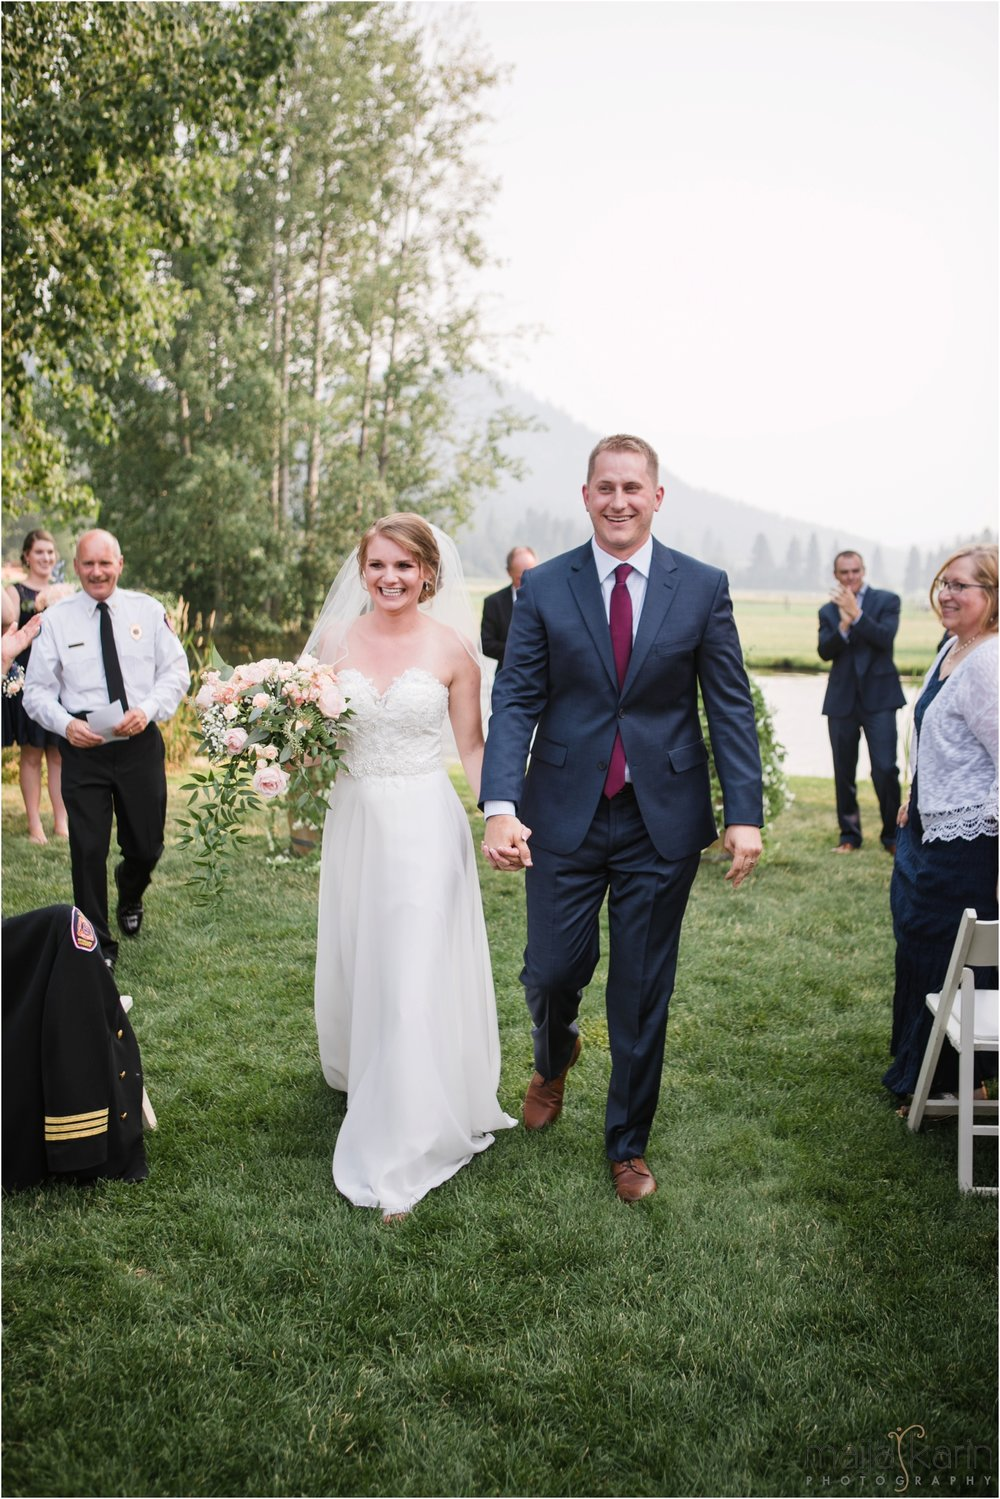 Mountain-Springs-Lodge-Wedding-Maija-Karin-Photography_0039.jpg